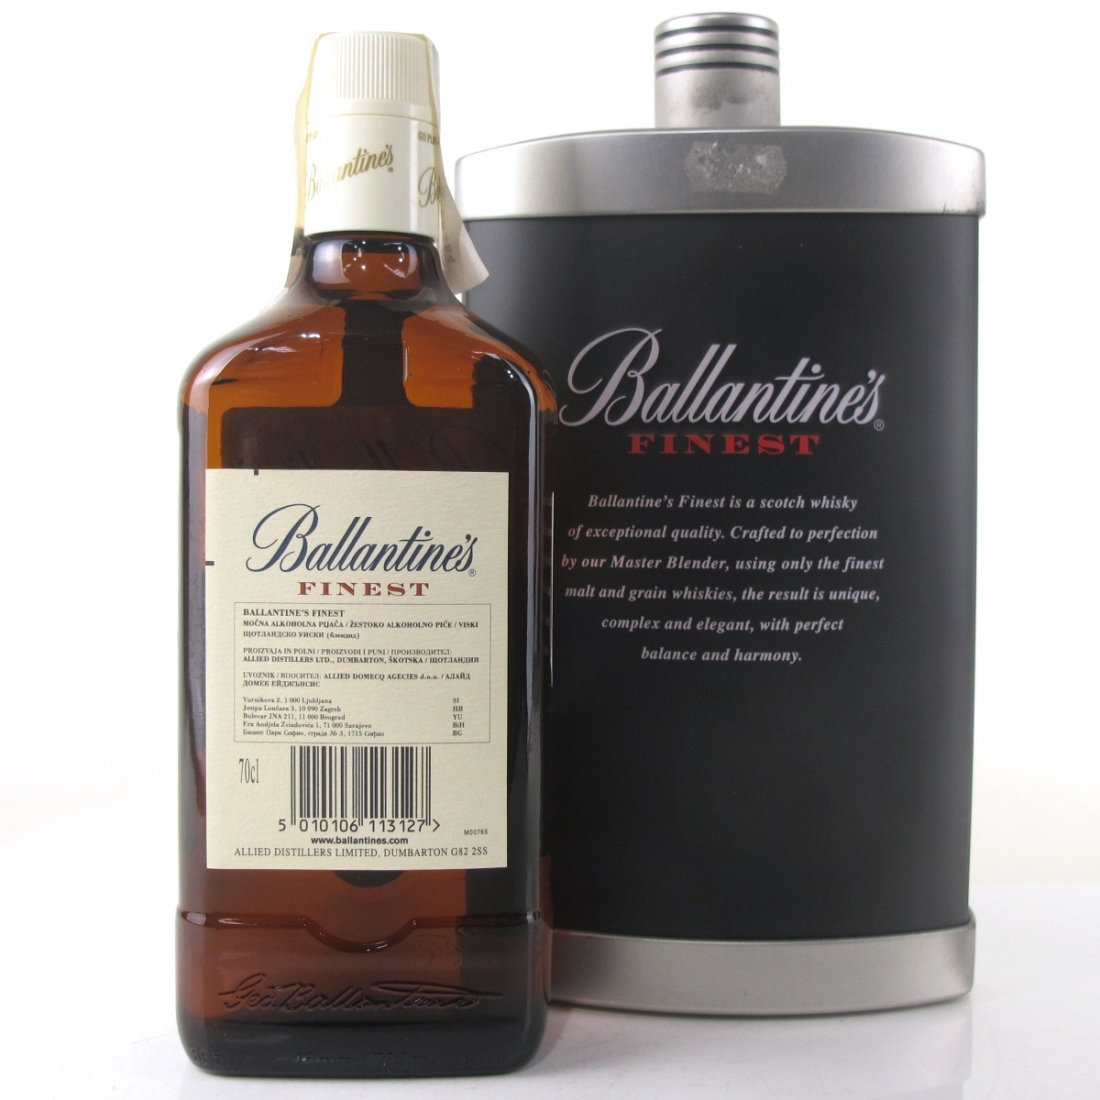 Ballantine's Finest Scotch Whisky